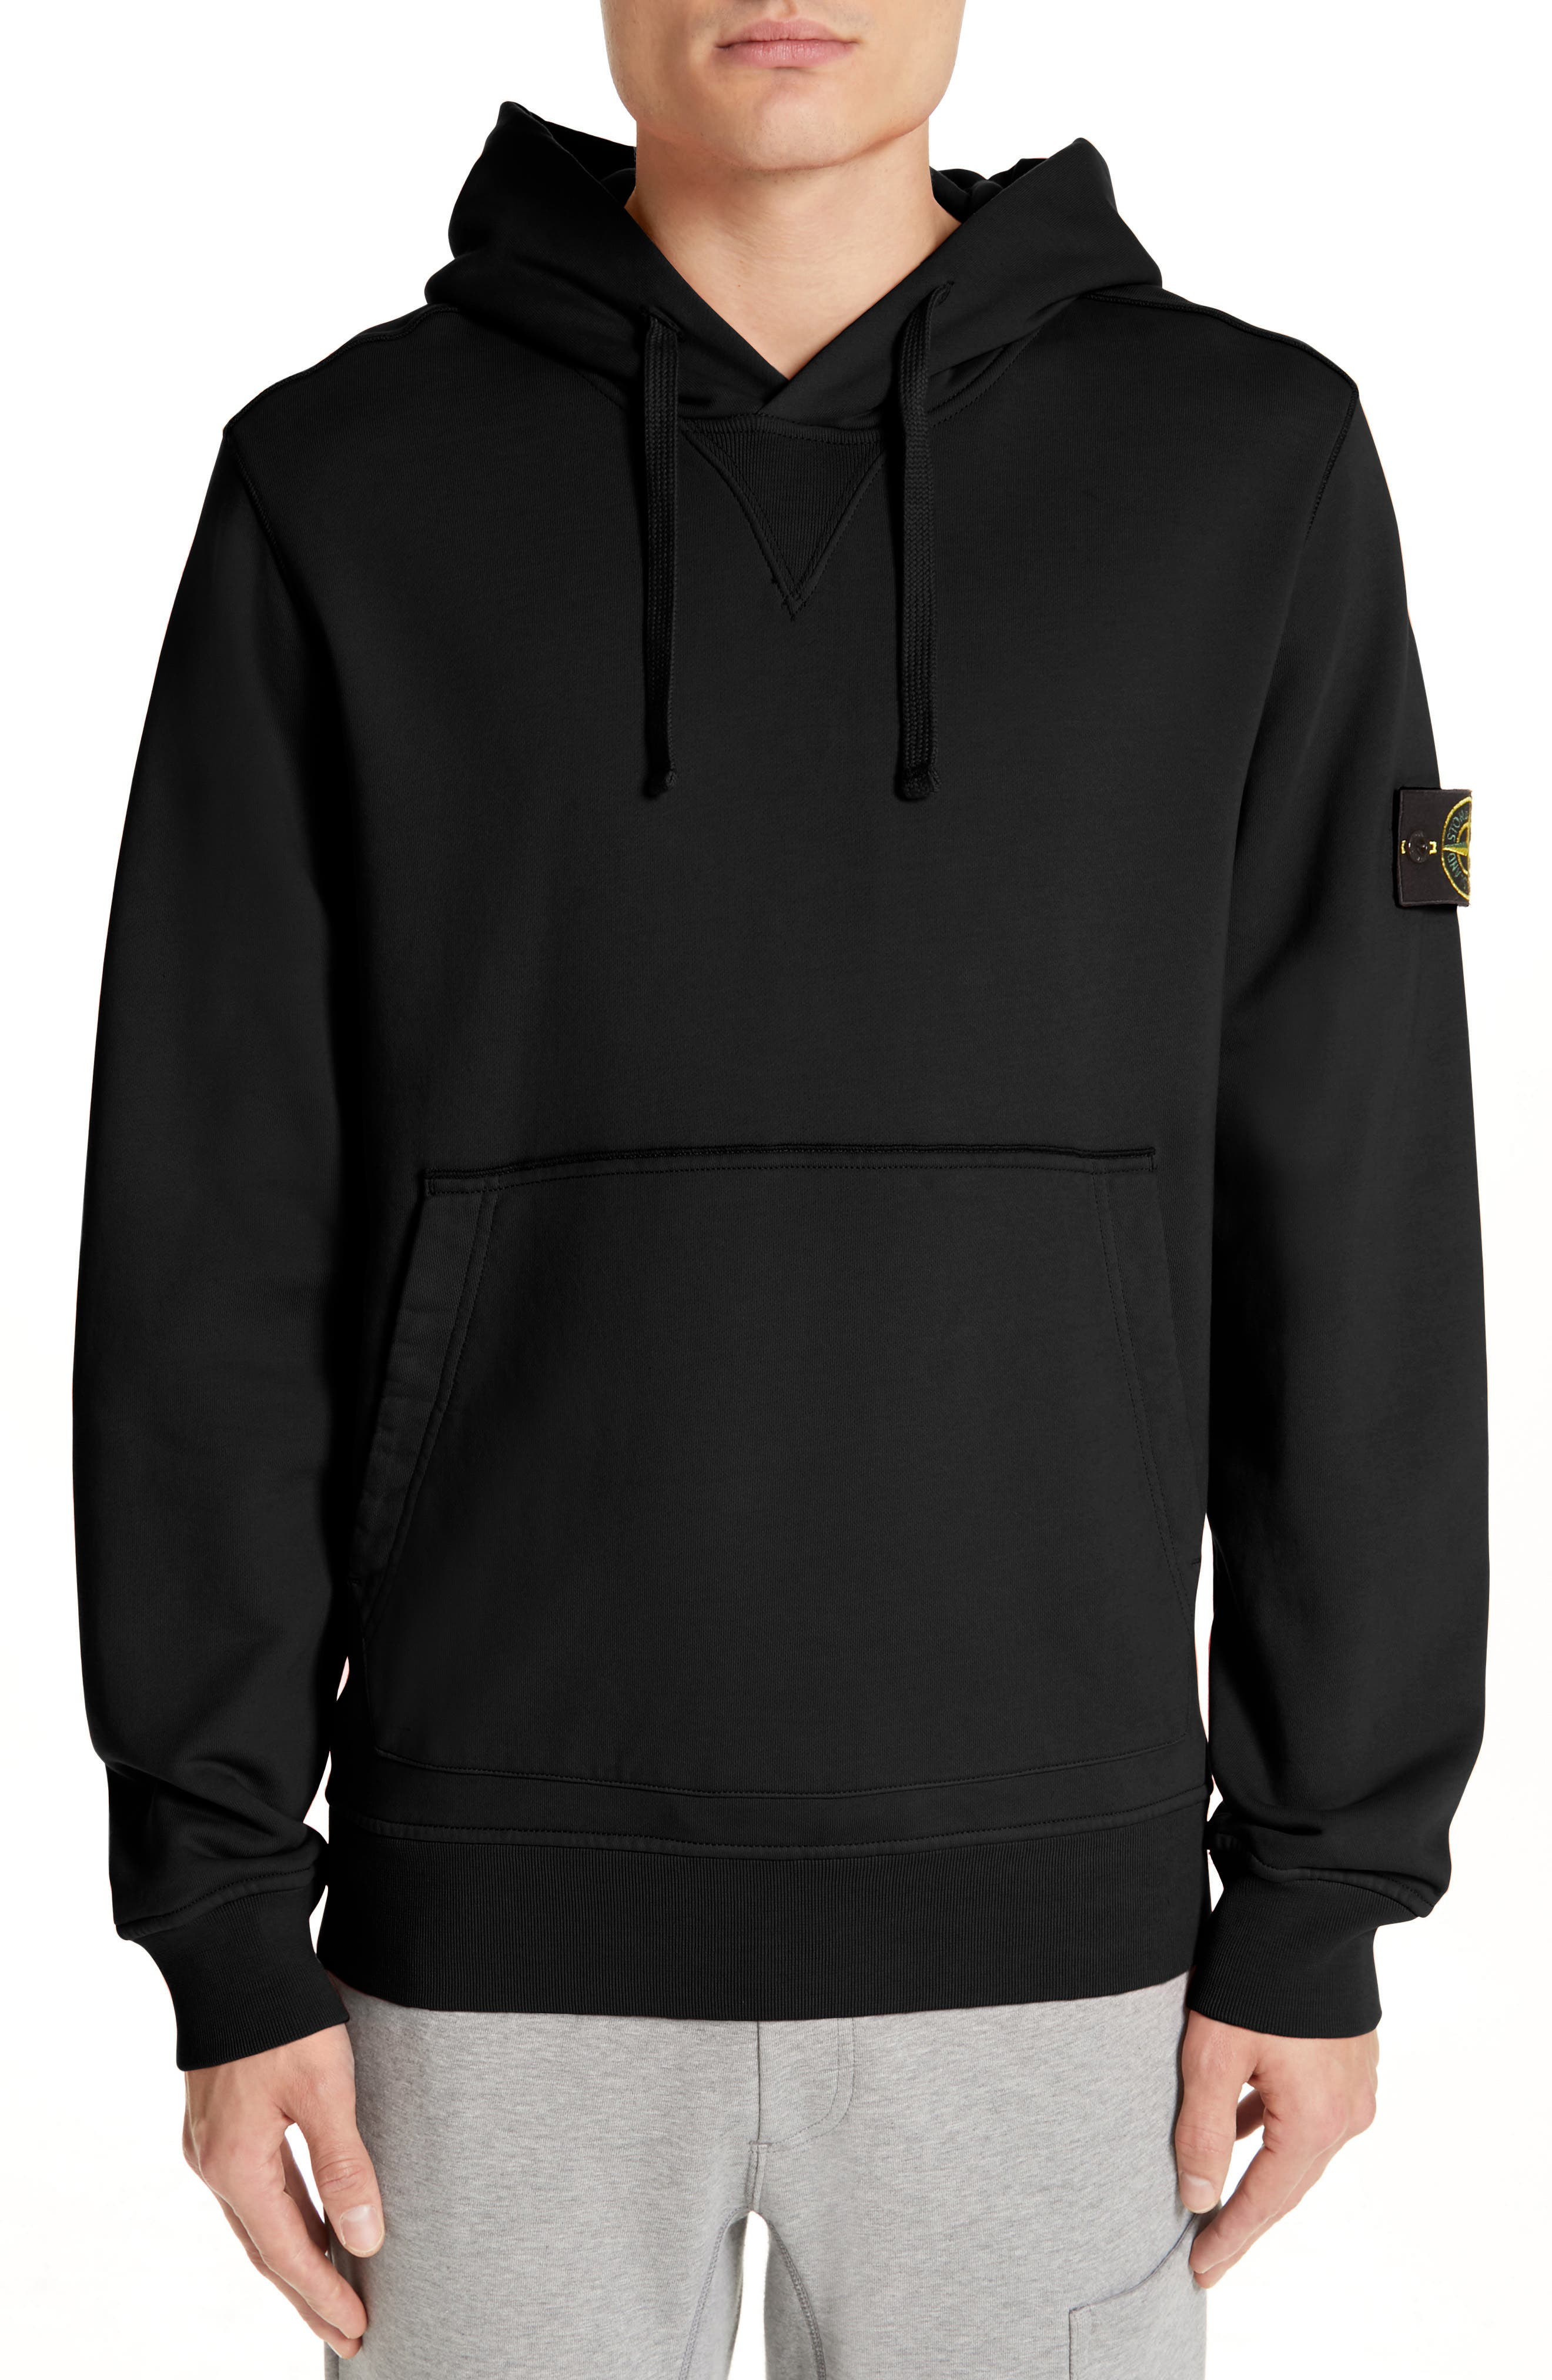 STONE ISLAND, Pullover Hoodie, Main thumbnail 1, color, BLACK